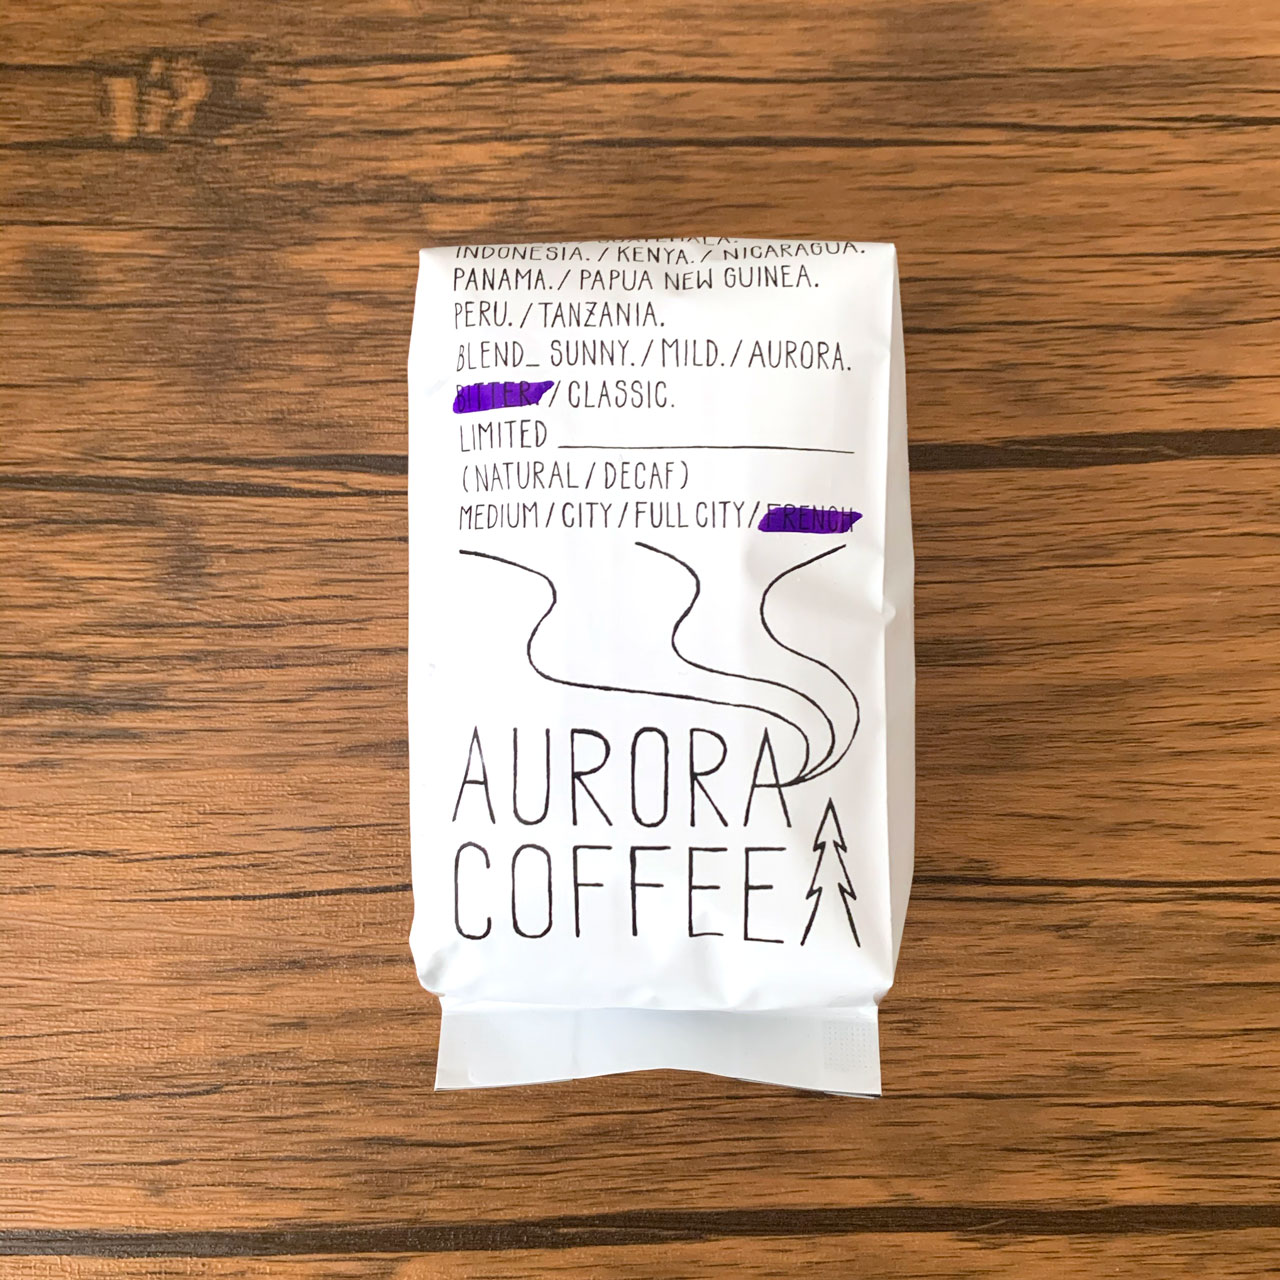 AURORA COFFEE